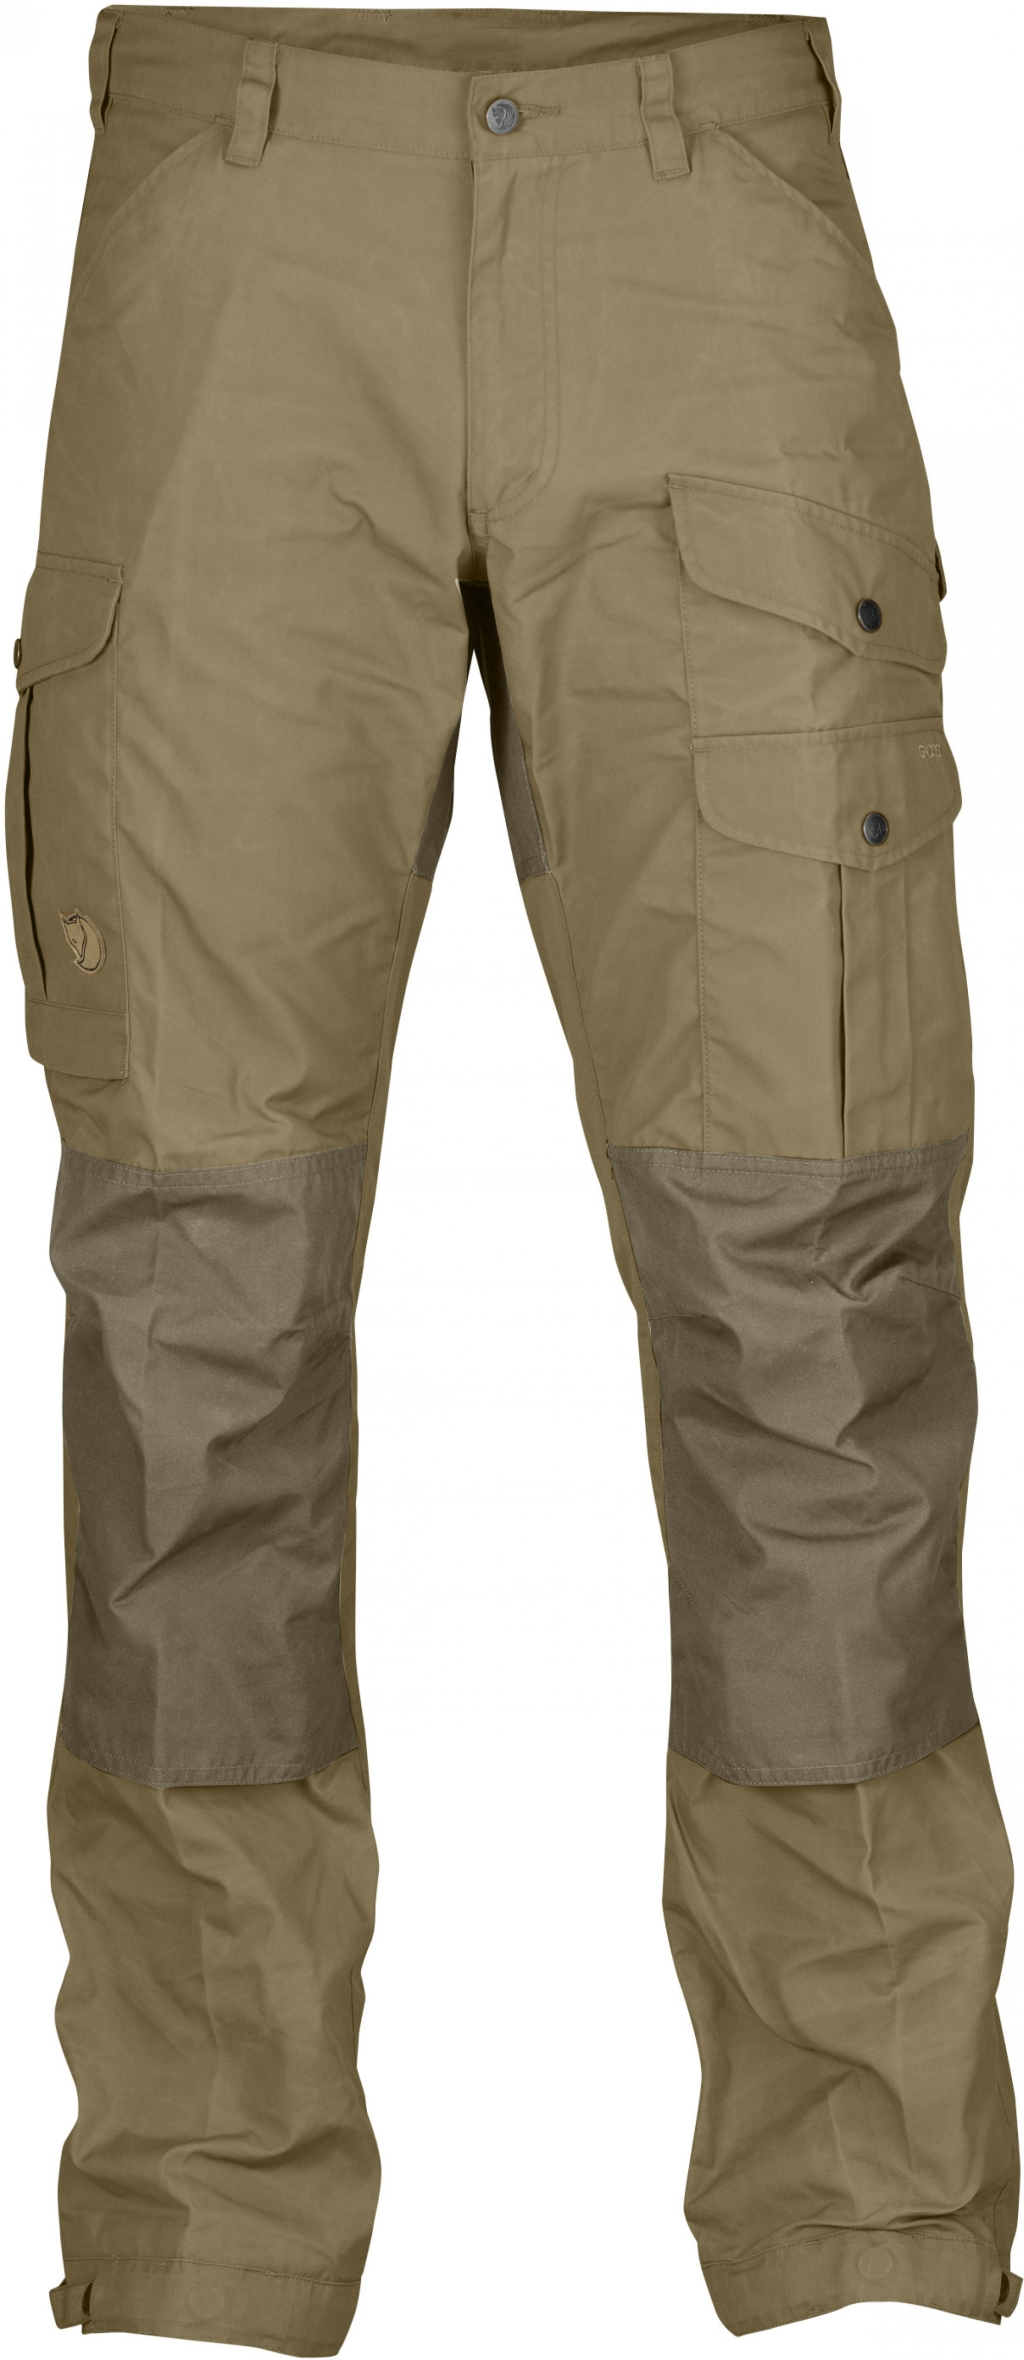 FjallRaven Vidda Pro Trousers Regular Sand-30